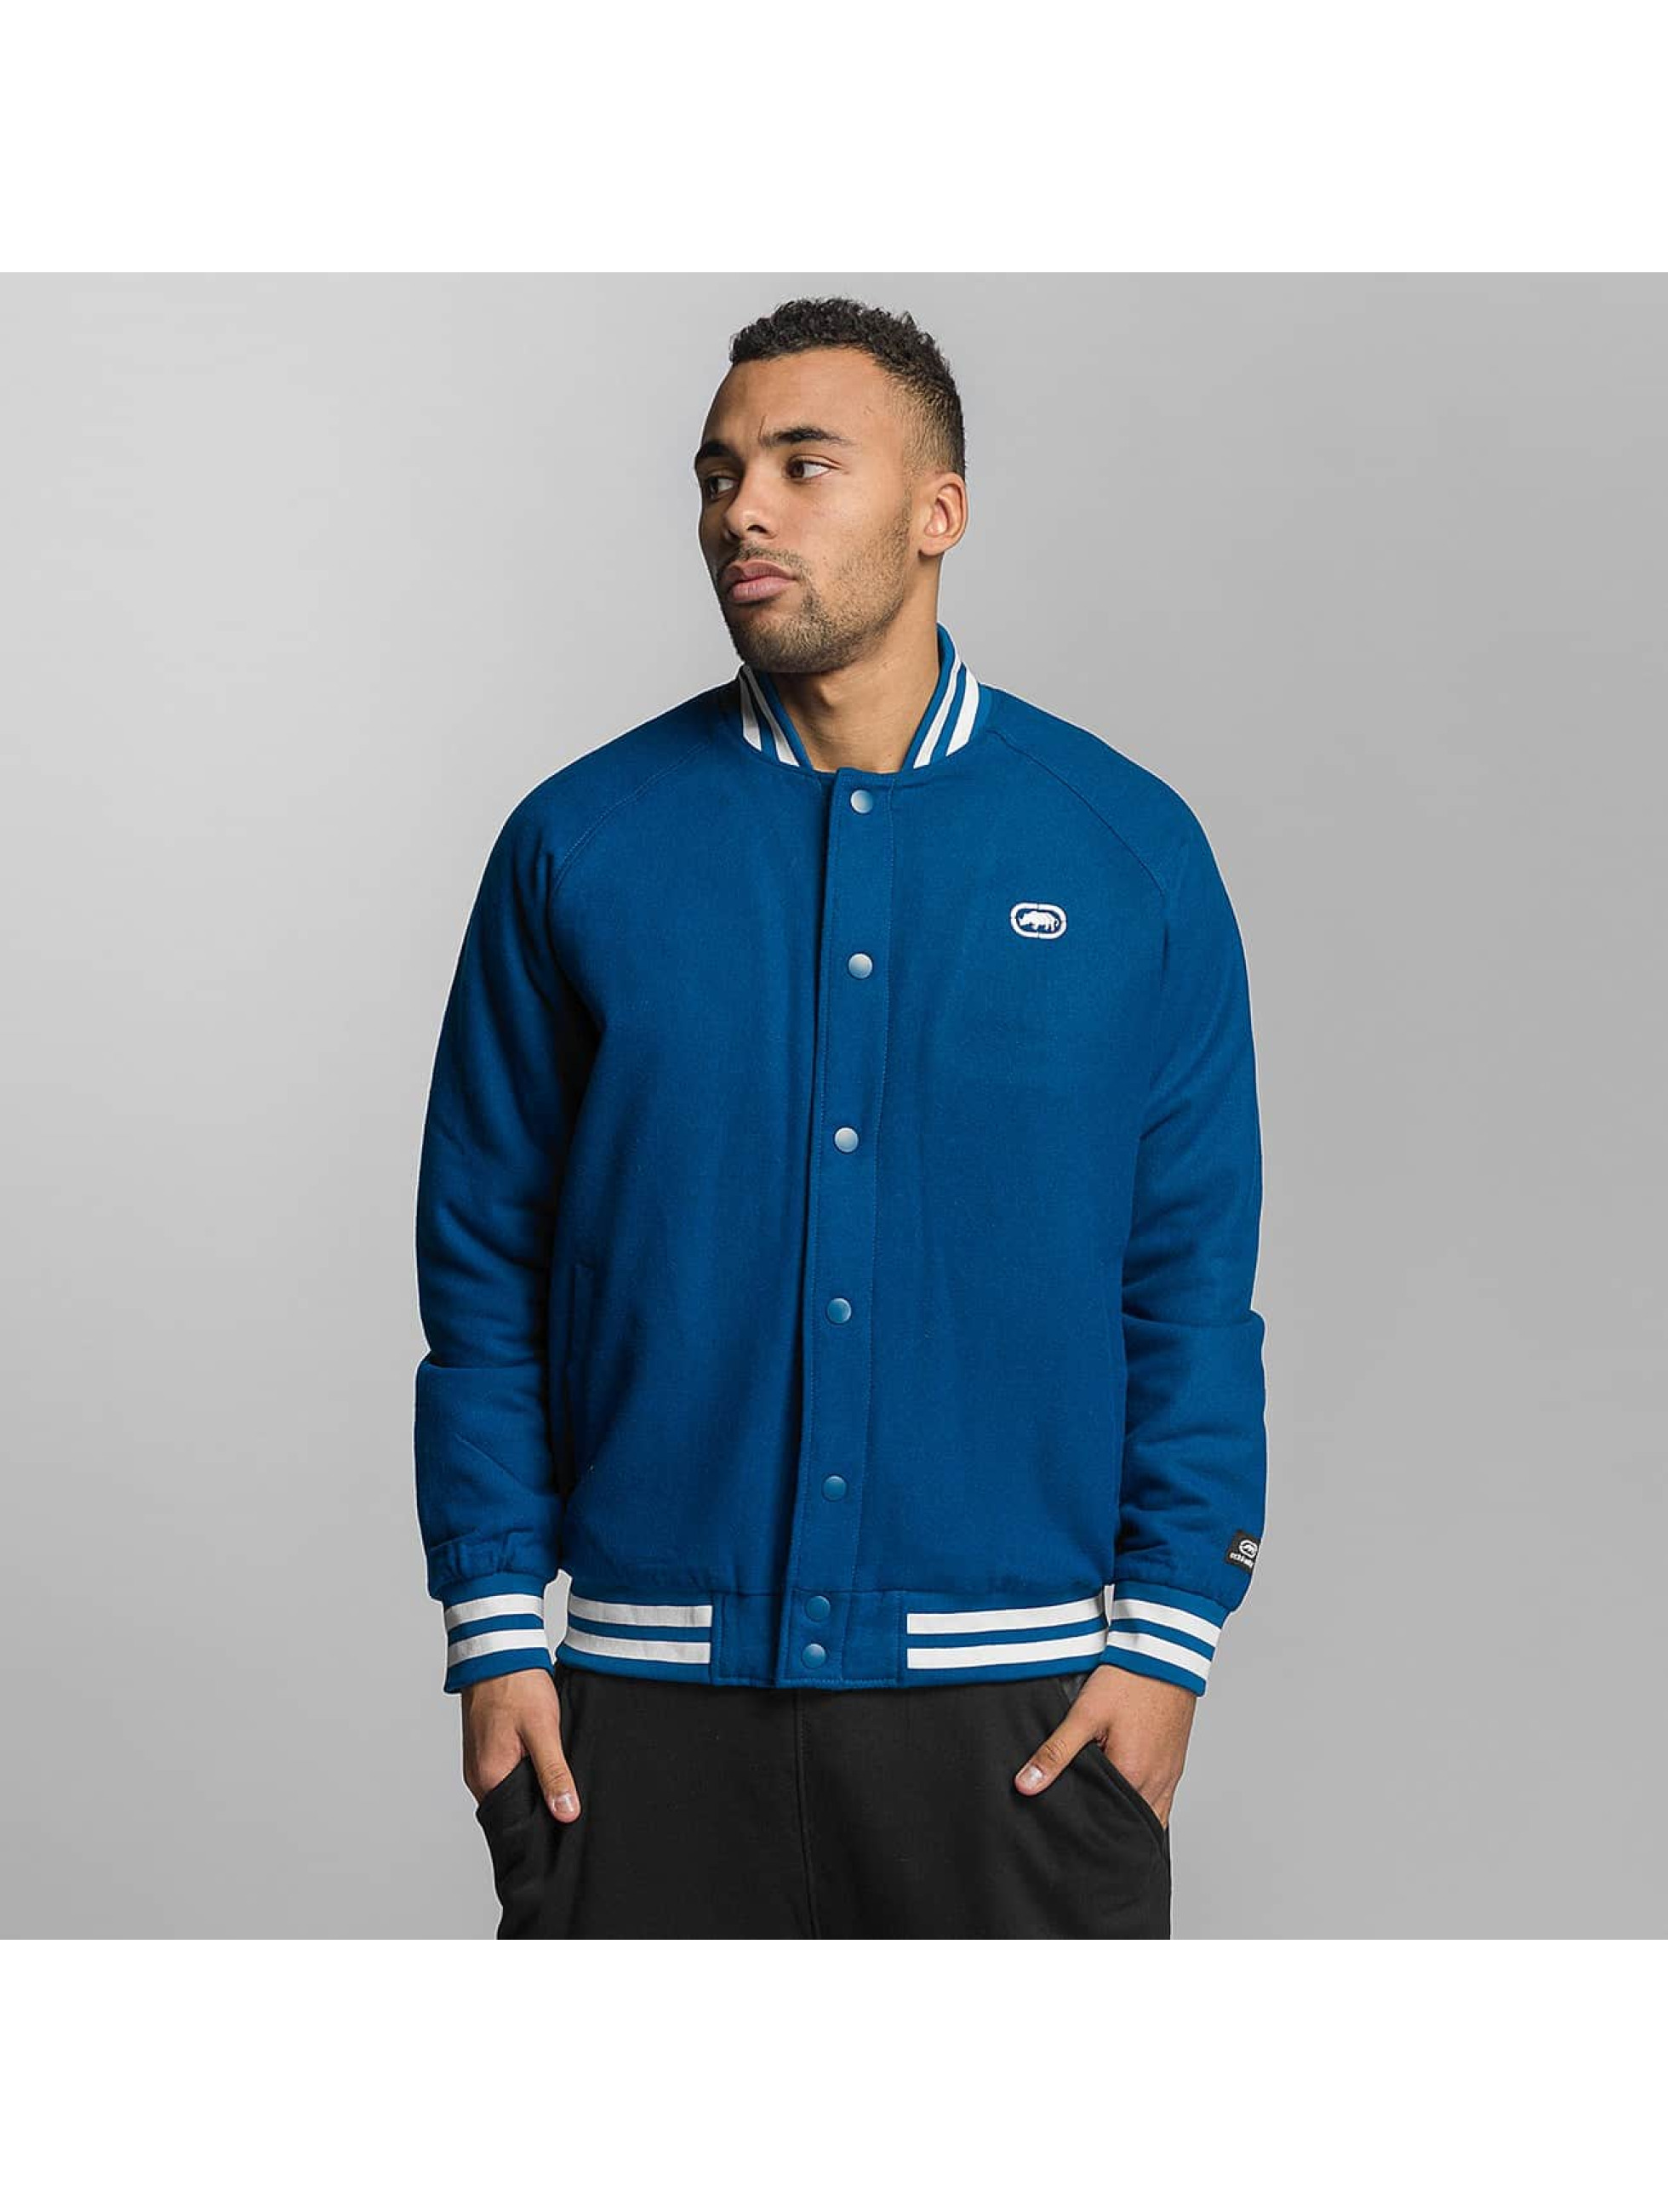 Ecko Unltd. / College Jacket JECKO in blue 4XL